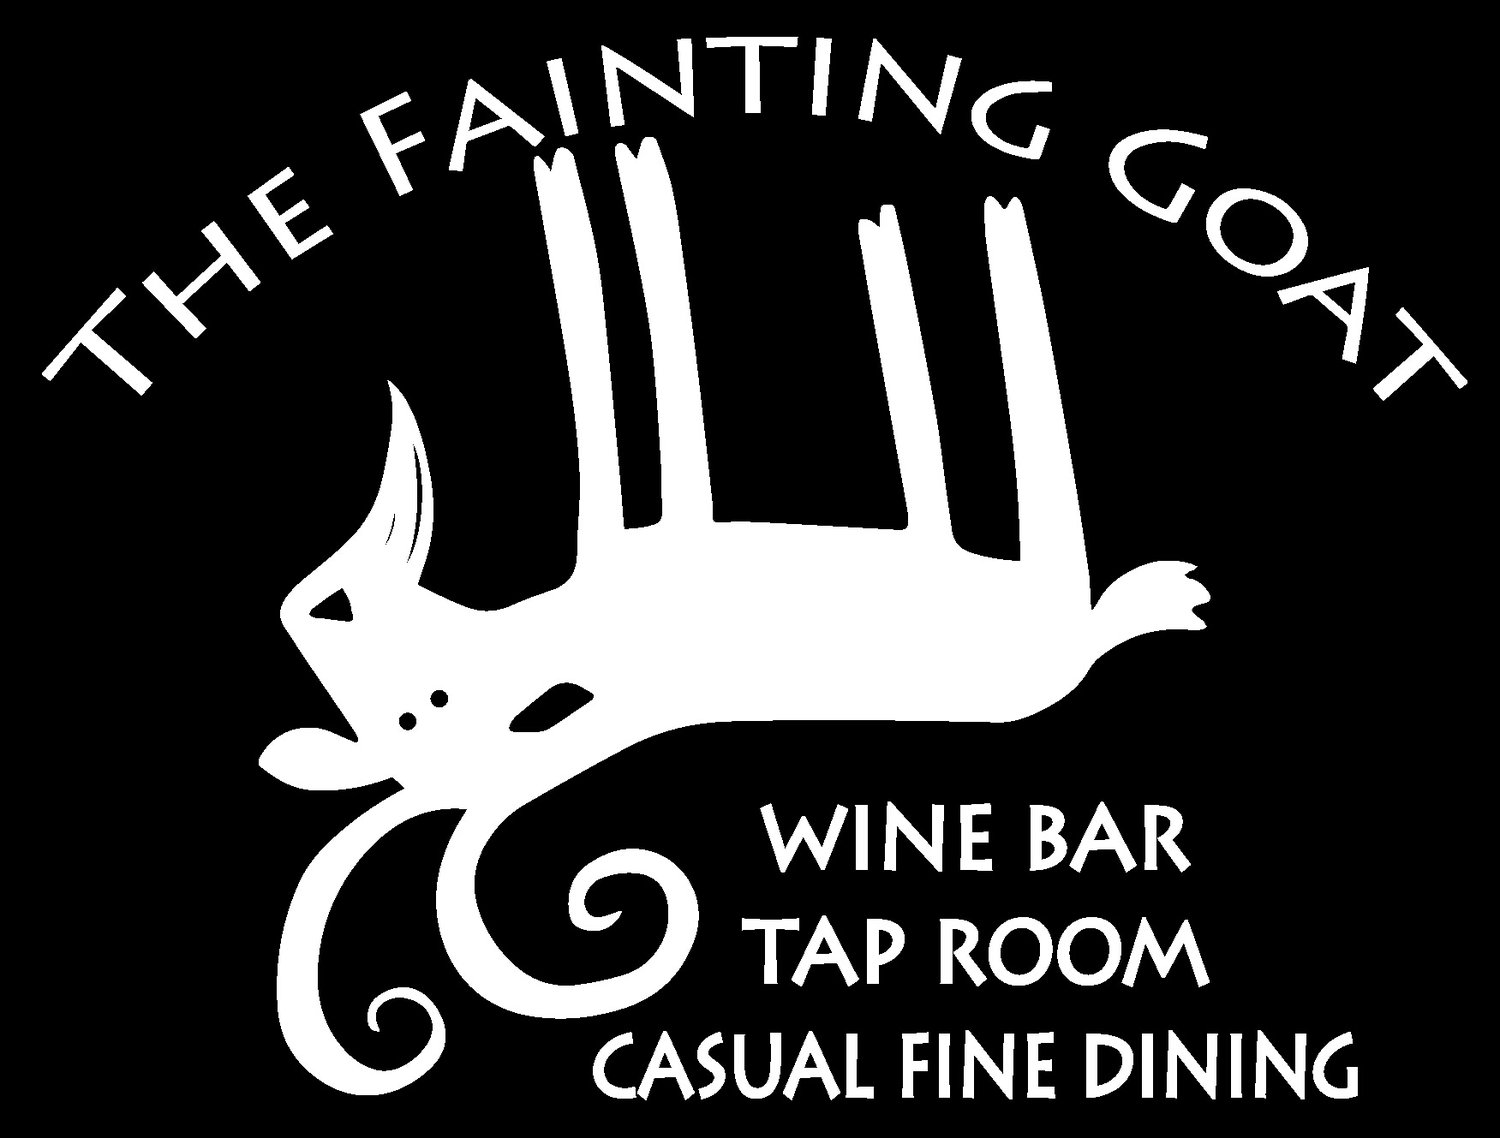 The Fainting Goat A Wine Bar & Eatery